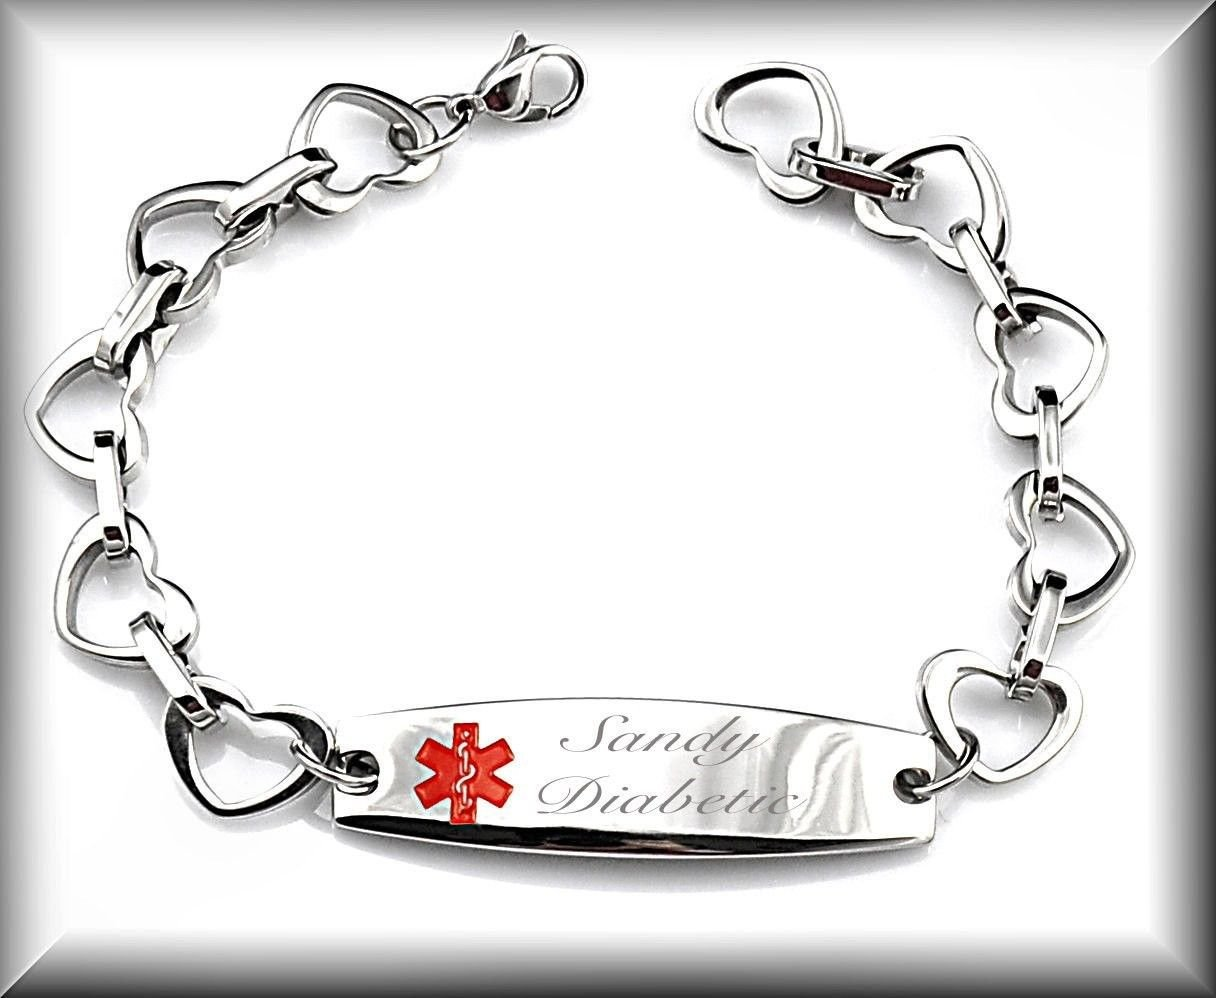 Personalized Engraved Stainless Steel Medical Alert Heart Link Id Bracelet Customized Free Engraving